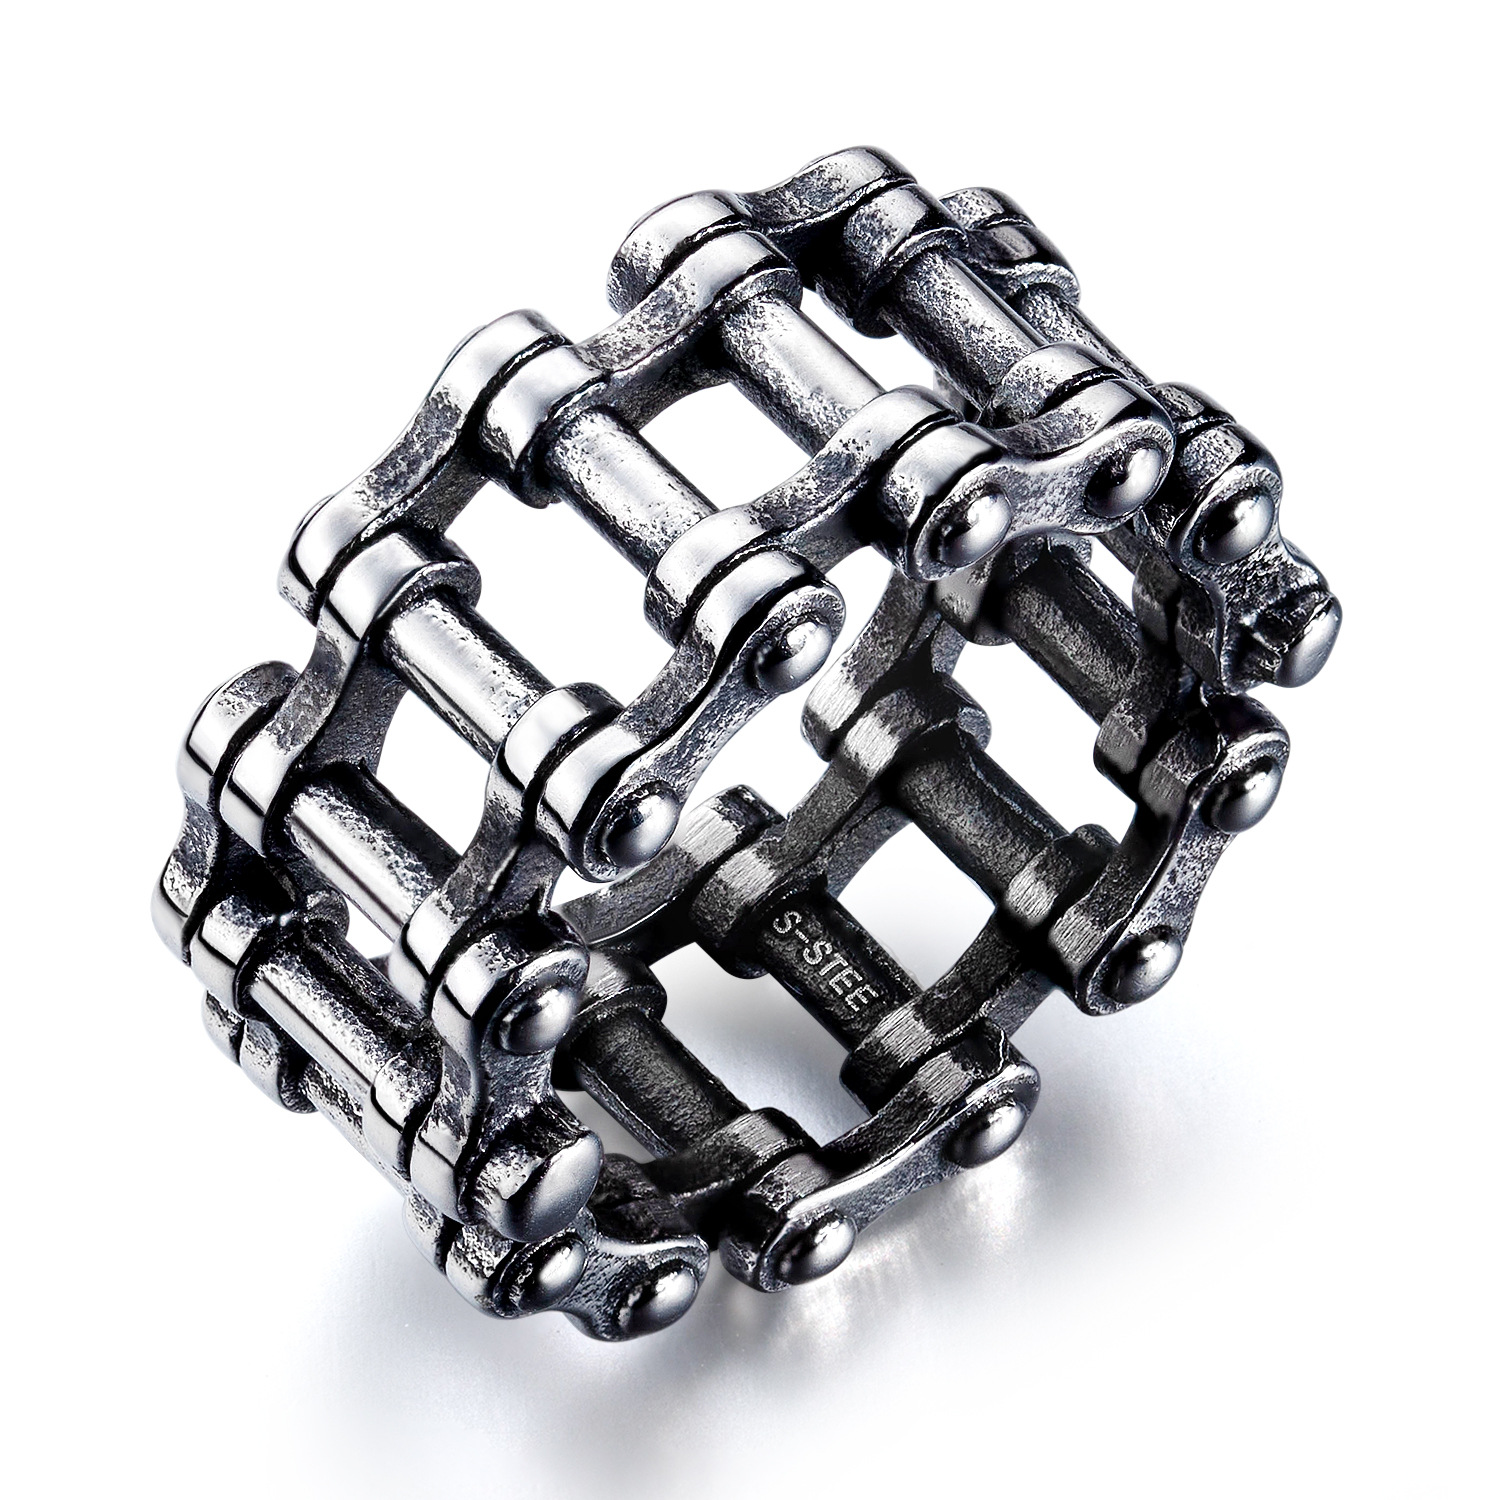 Unique Motorcycle Chain Inspired Ring for Gift Giving